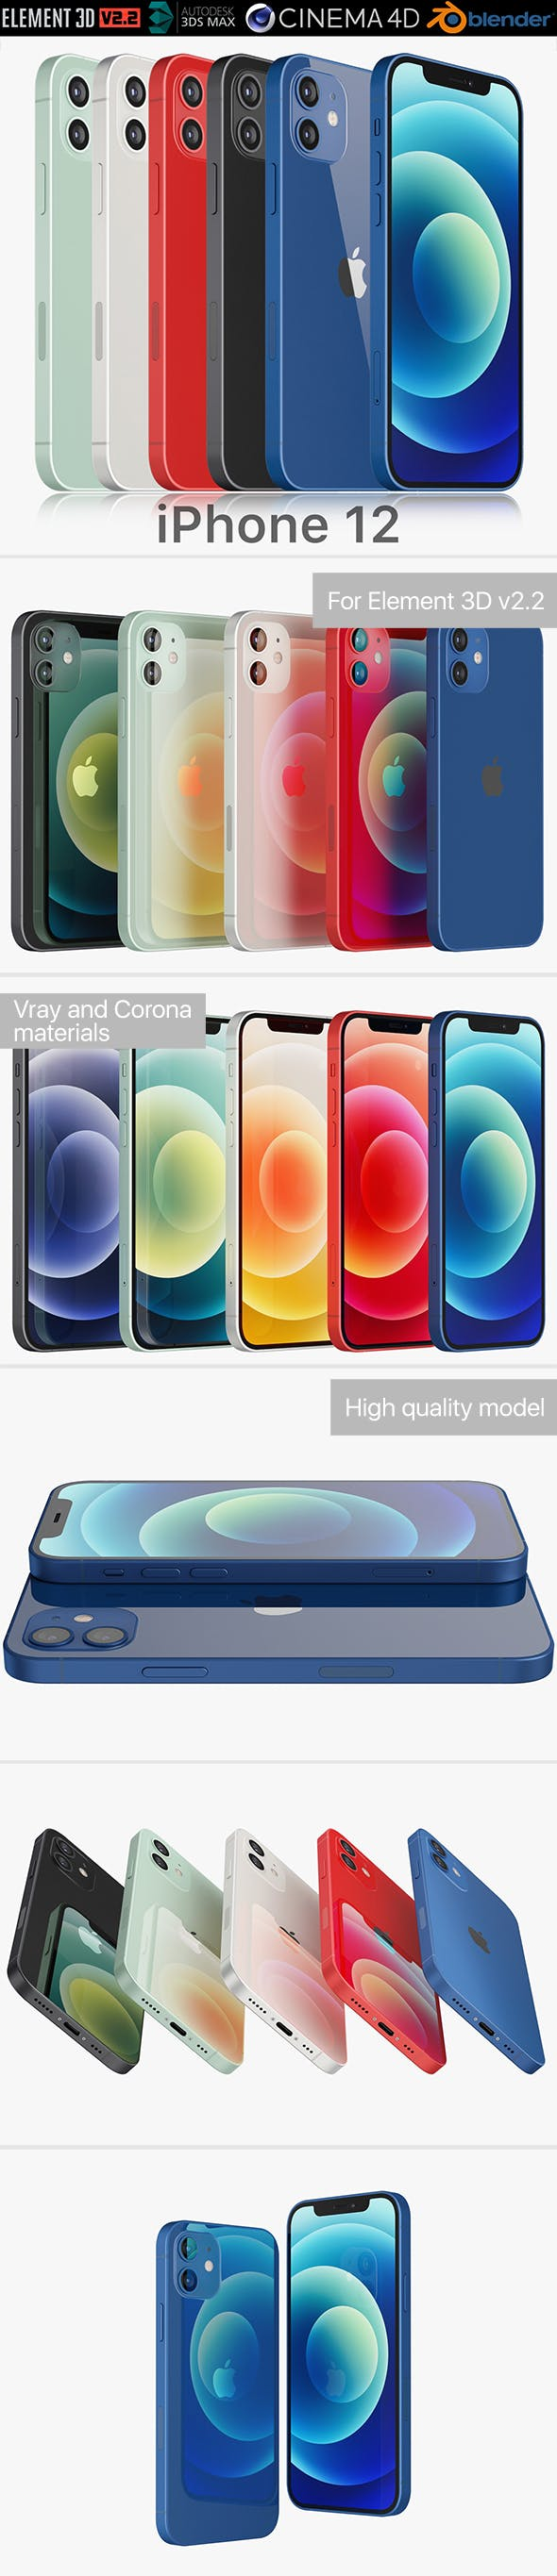 Apple iPhone 12 all colors - 3DOcean Item for Sale